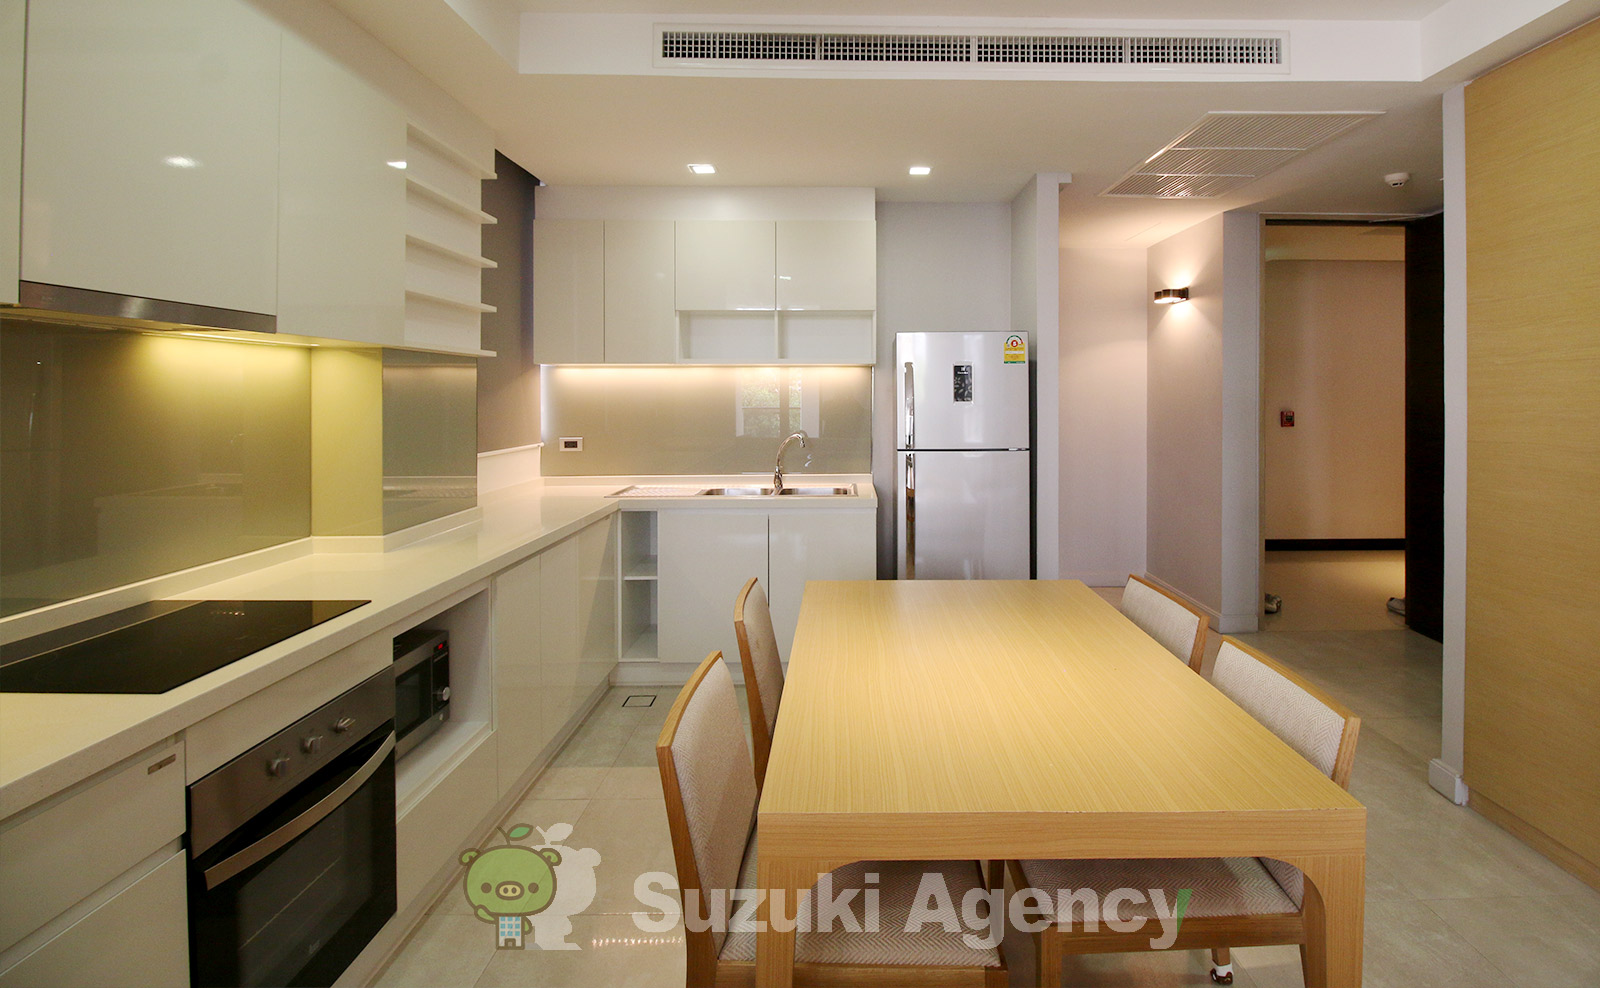 Kirthana Residence:2Bed Room Photos No.5